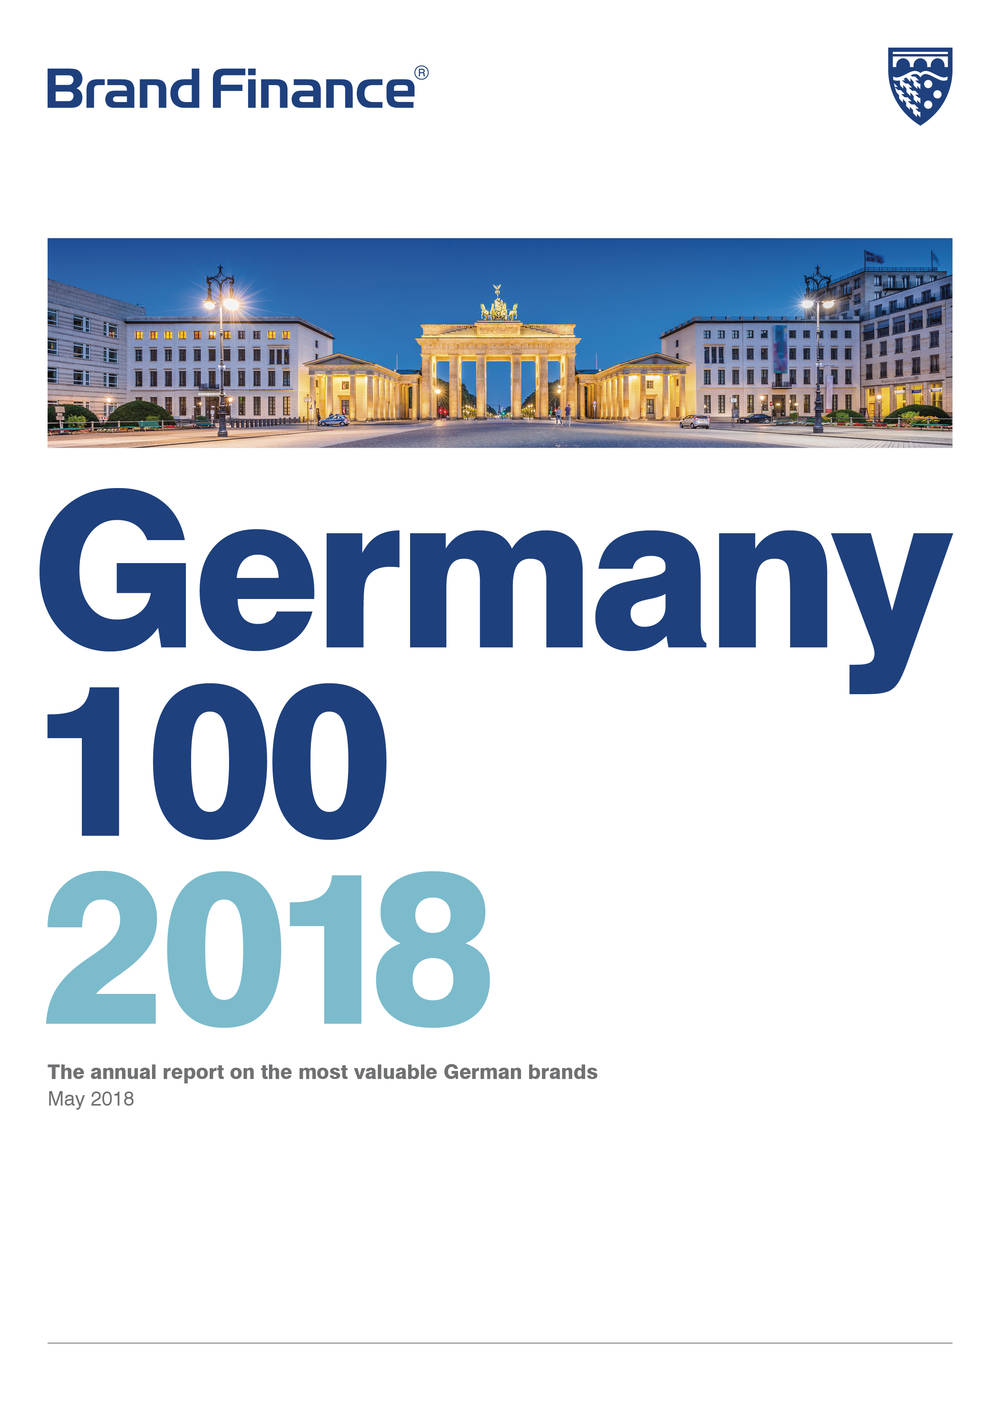 Brand Finance Germany 100 2018